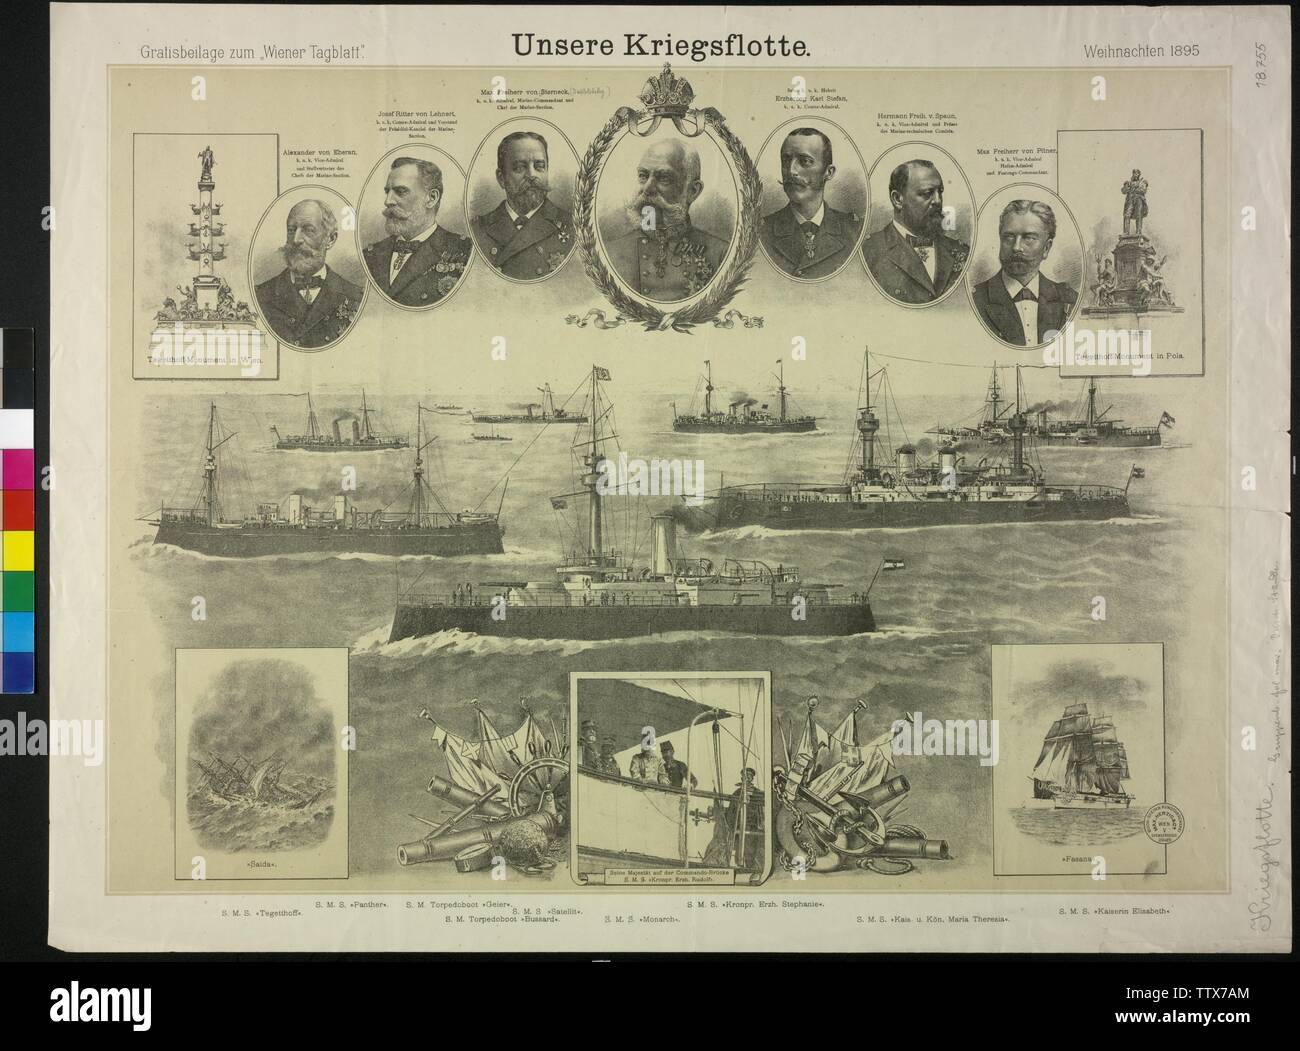 our navy, tableau with motifs of the Imperial and Royal navy: ships, monument and portrait. toned lithograph, Additional-Rights-Clearance-Info-Not-Available - Stock Image